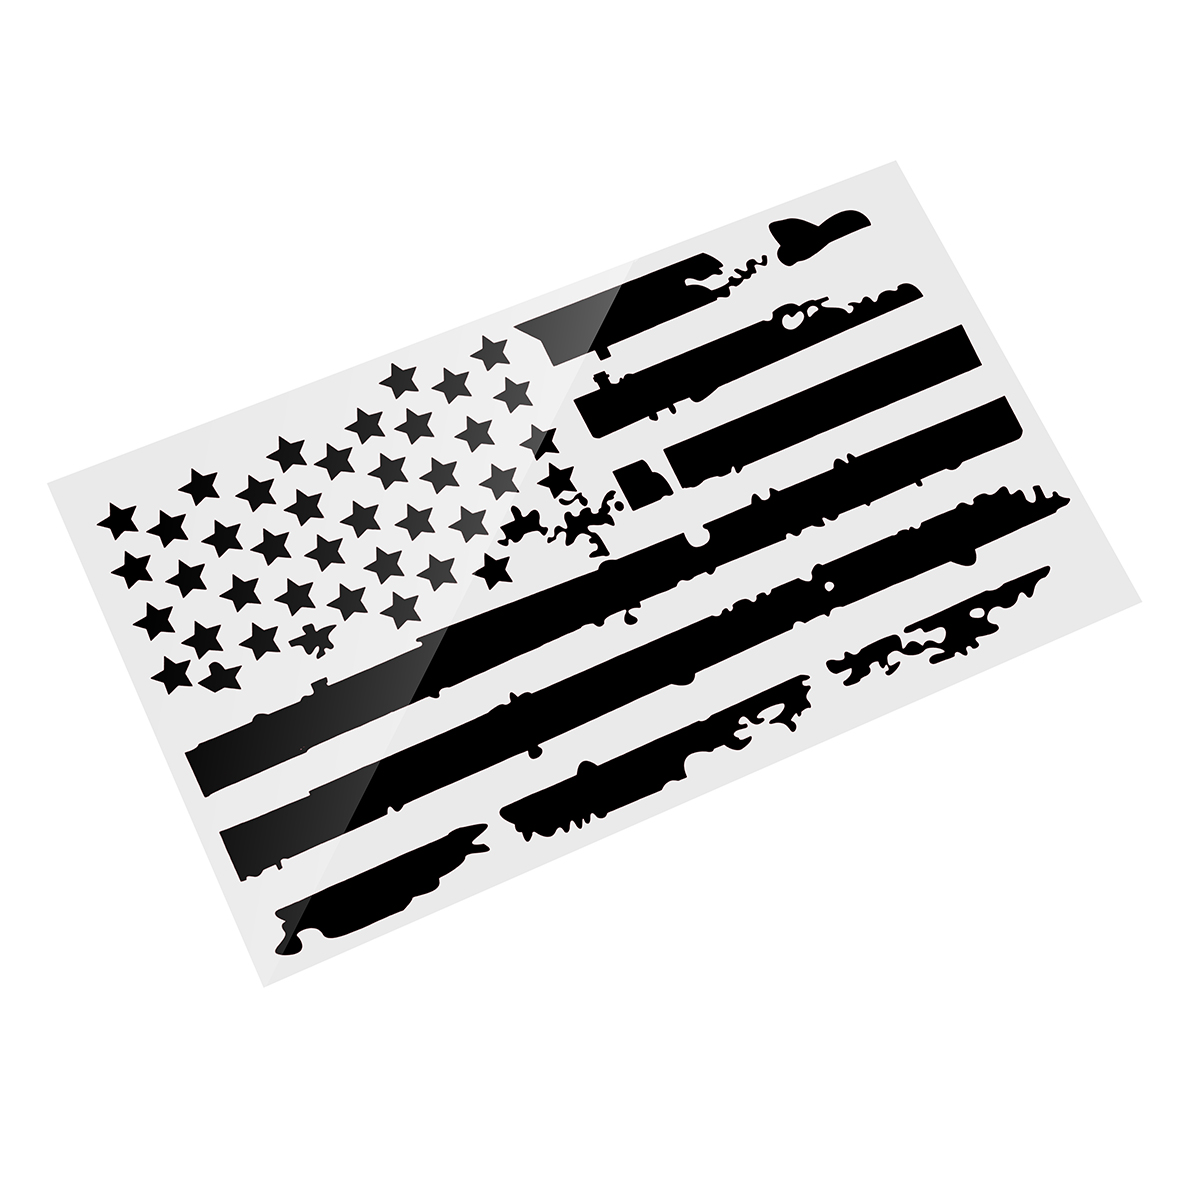 20X35 Inches USA Flag Car Hood Stickers Vinyl Auto Cover Truck Decals Universal